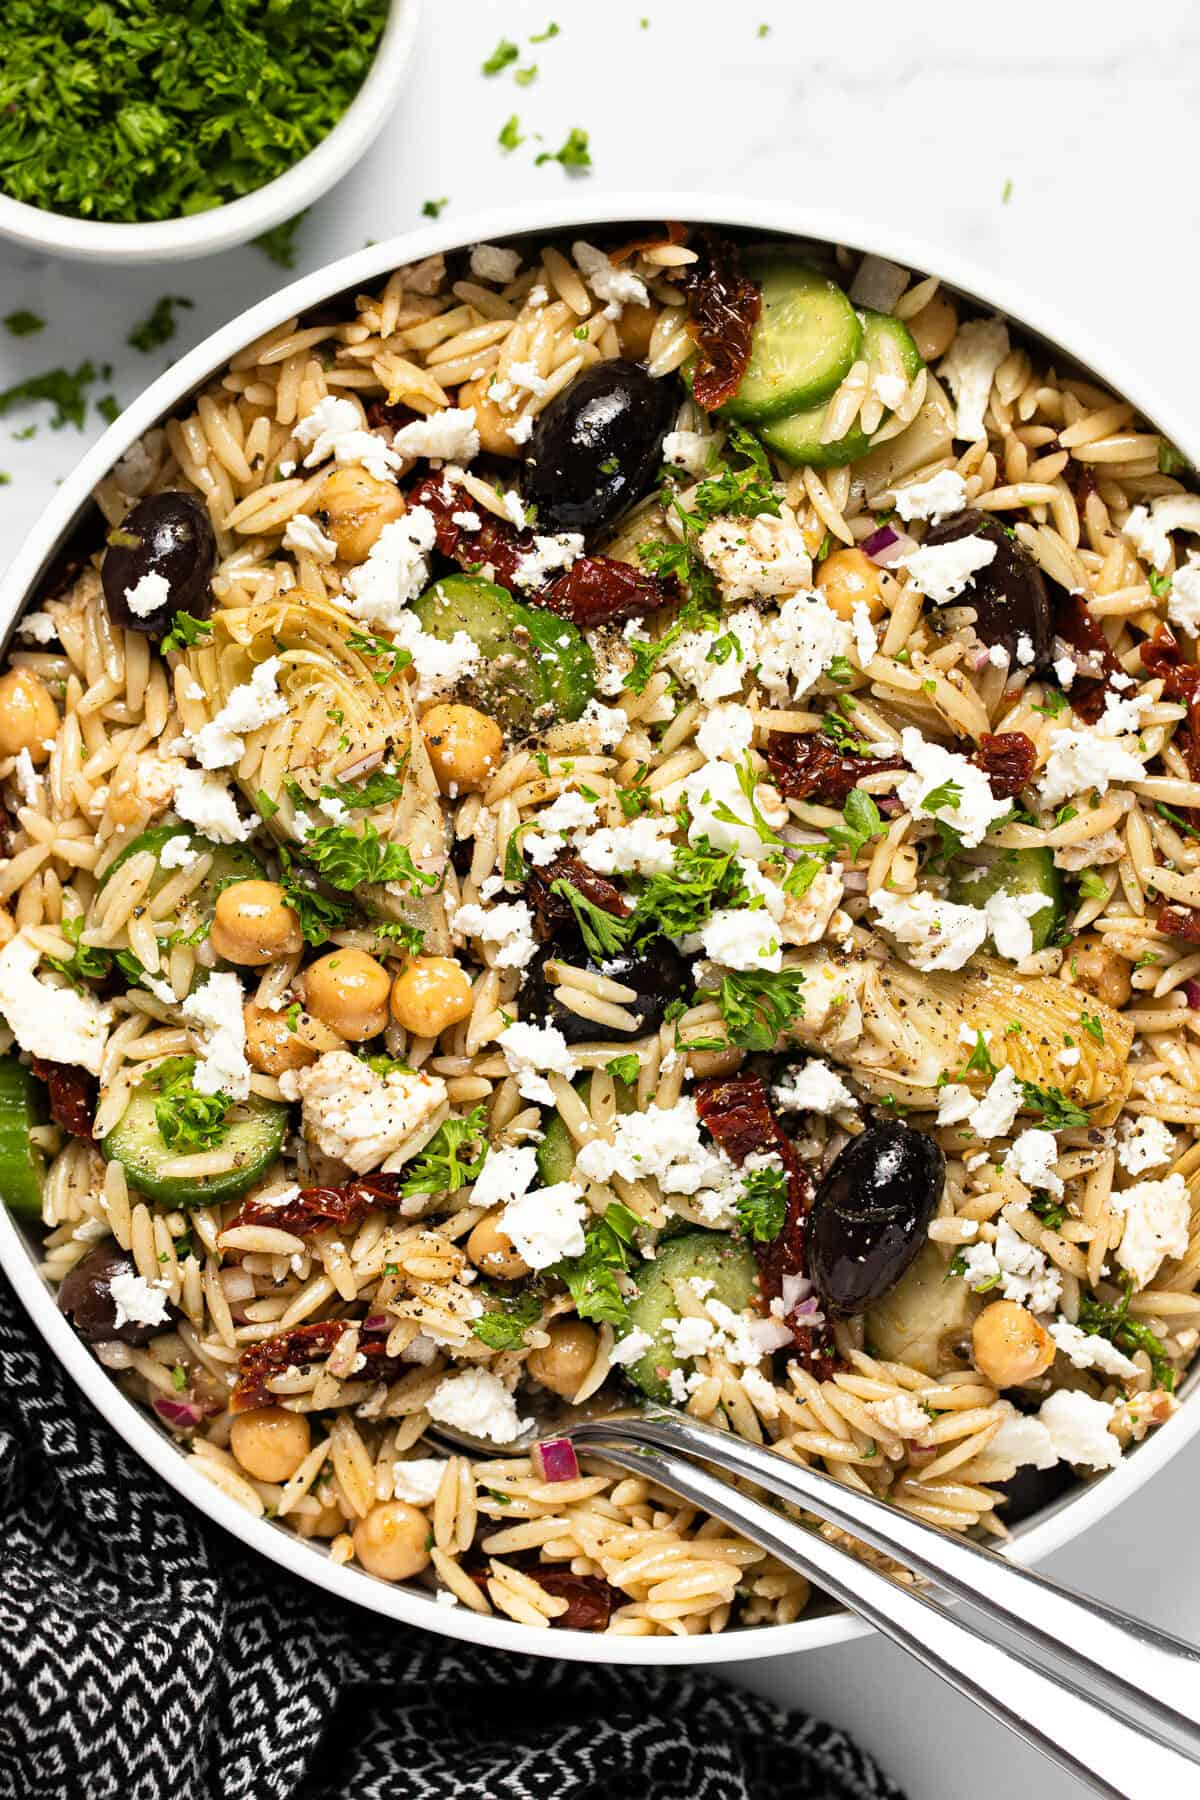 Large white bowl filled with Greek pasta salad garnished with parsley